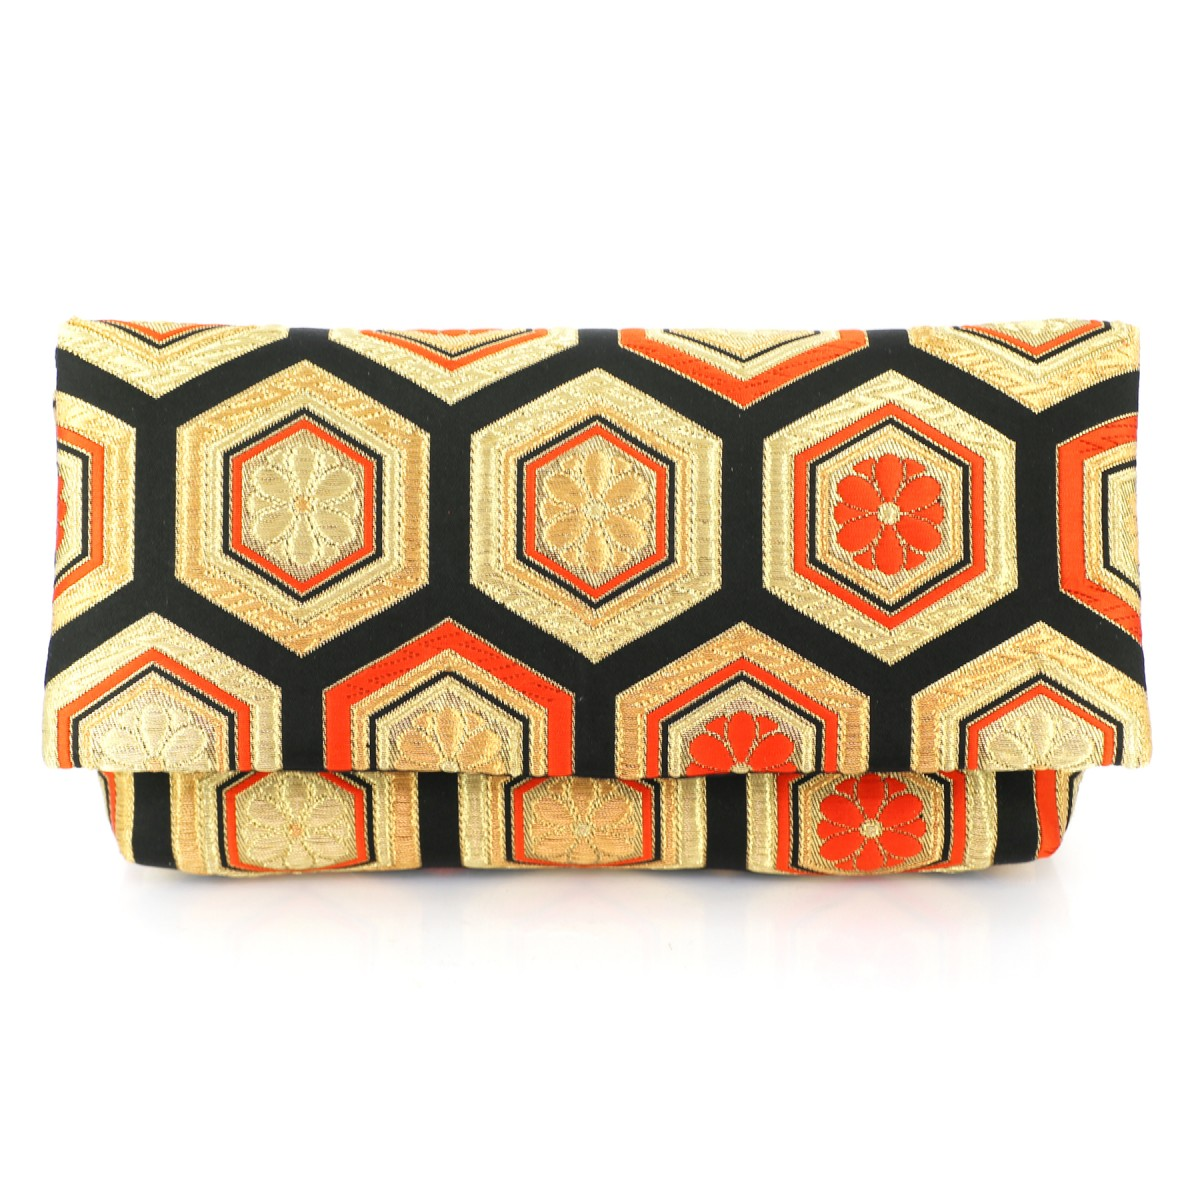 Kimono Envelope Clutch in Black and Gold Hexagon Patterns